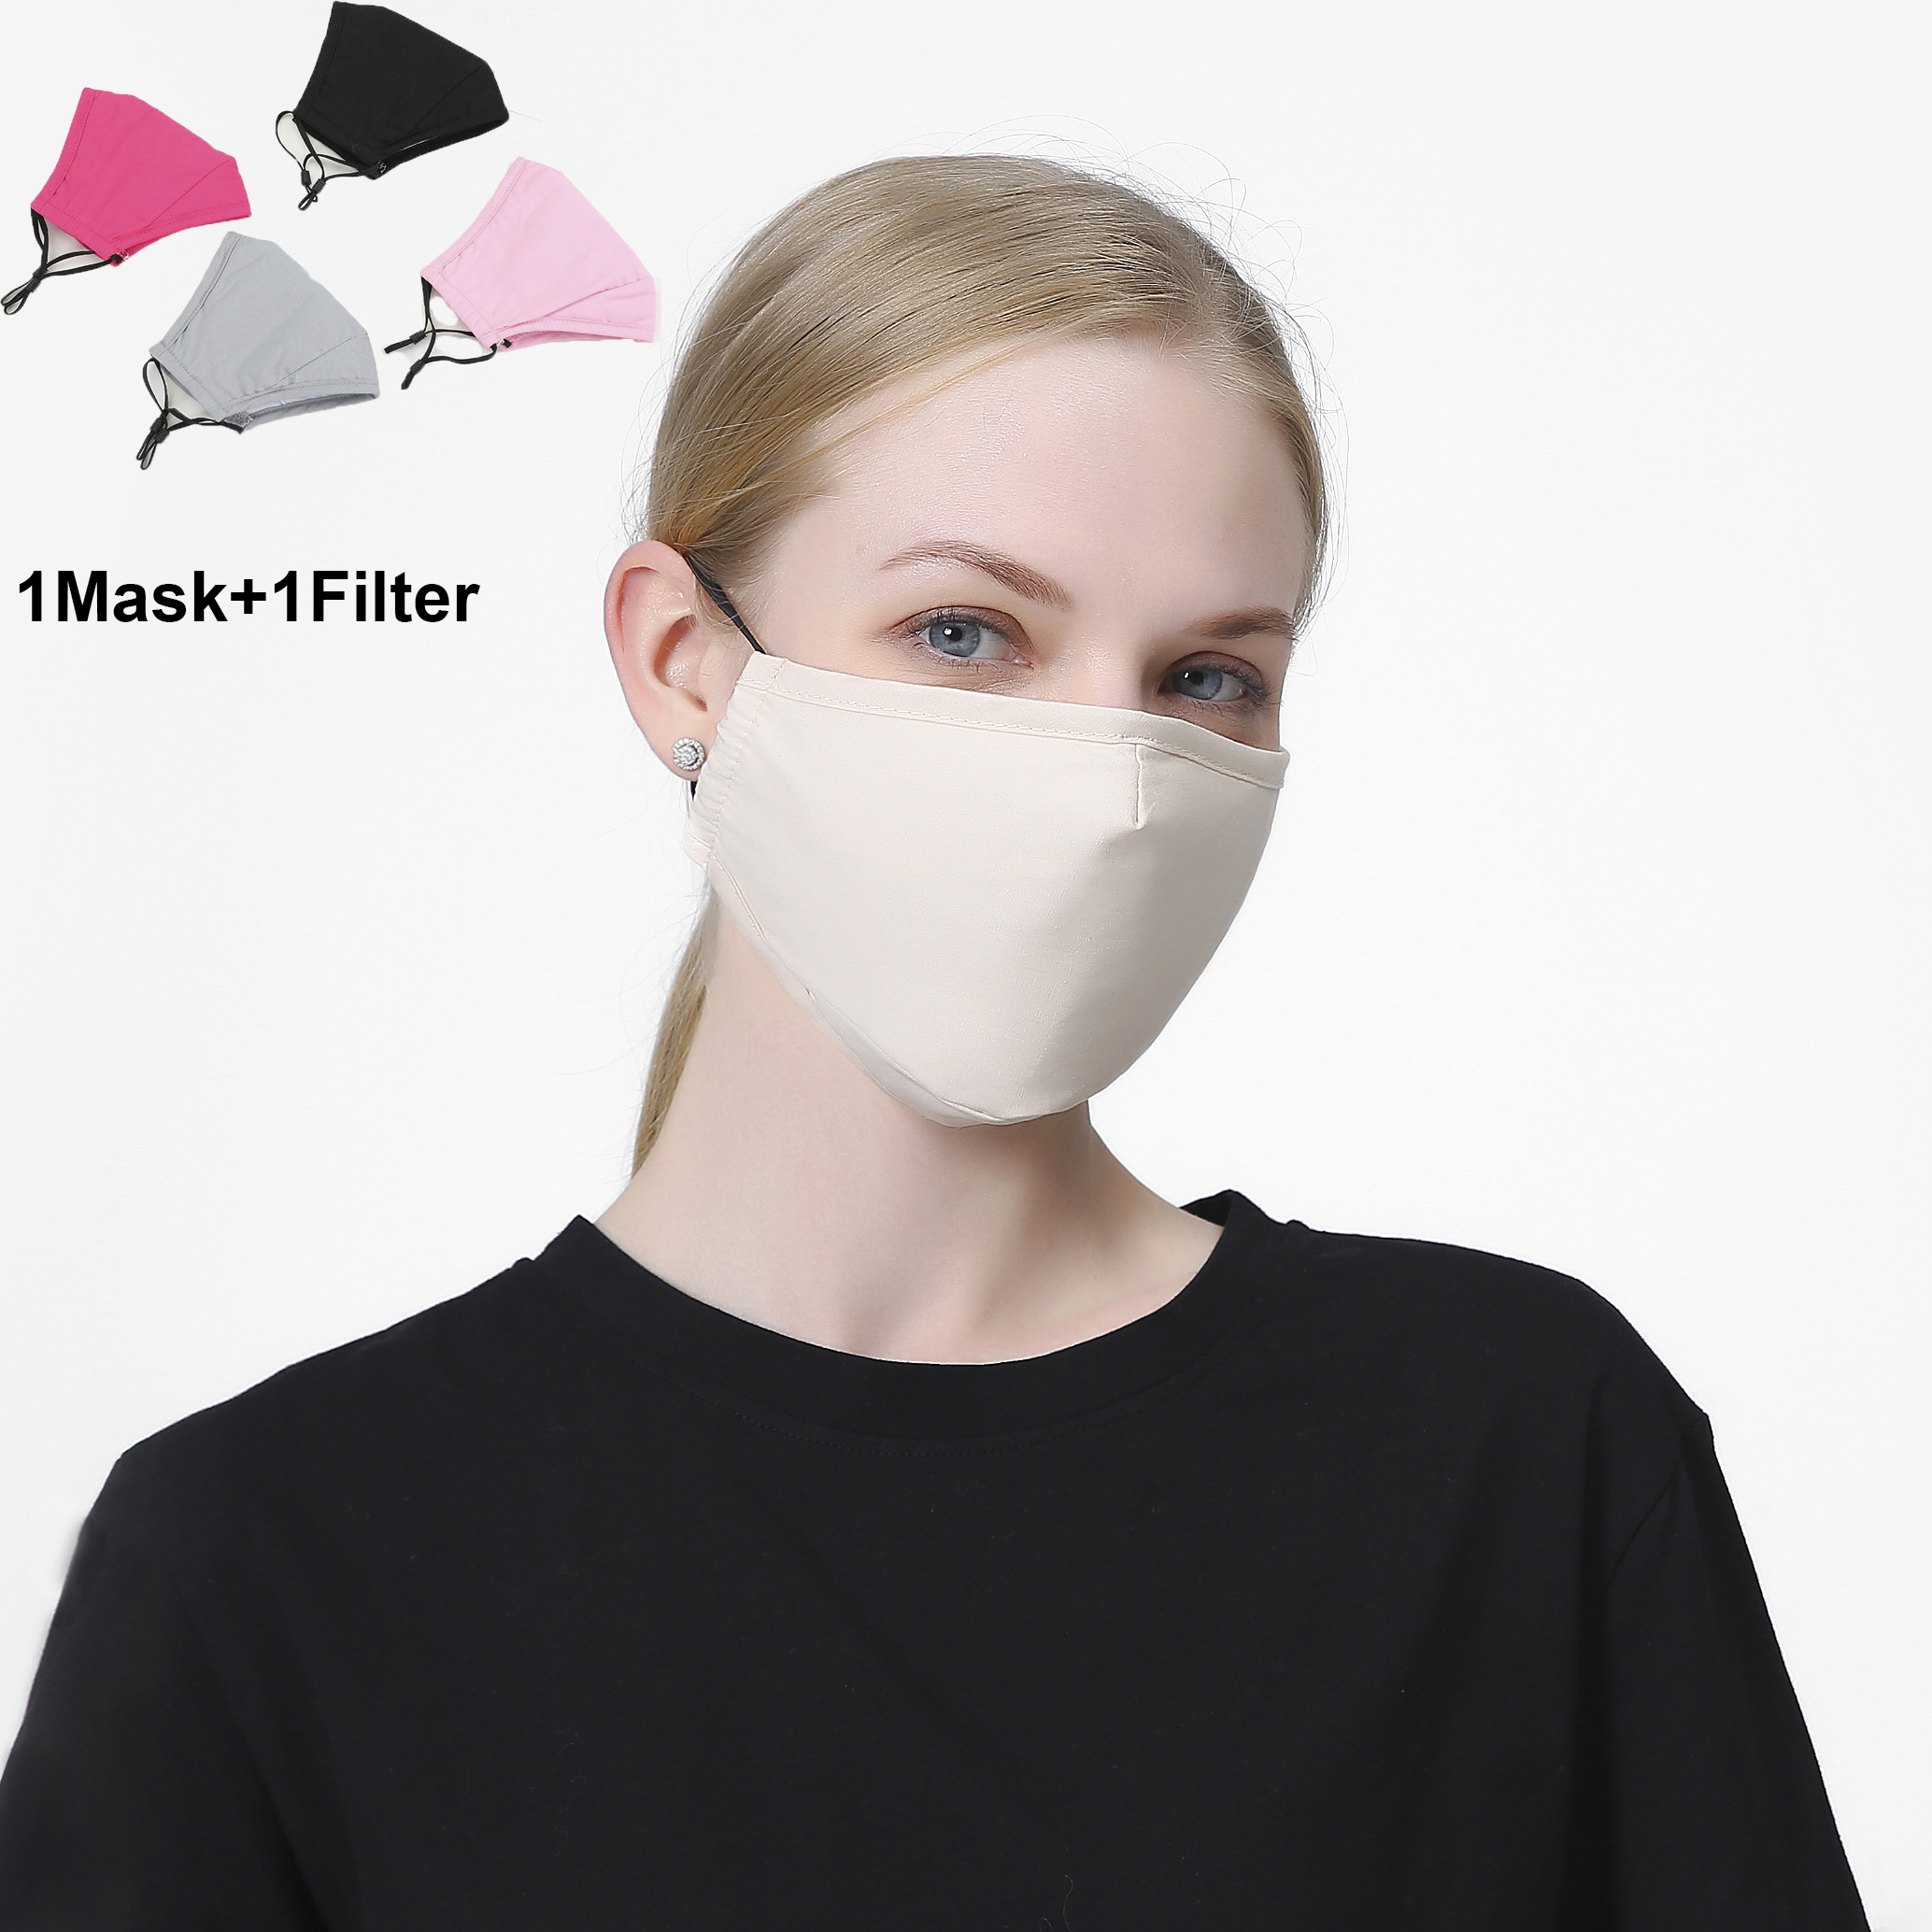 1Set PM2.5 Cotton Women Face Mask Cover Respirator Reusable Washable Dust Fog Pollution PM2.5 Men Mouth Mask With Filter Pad